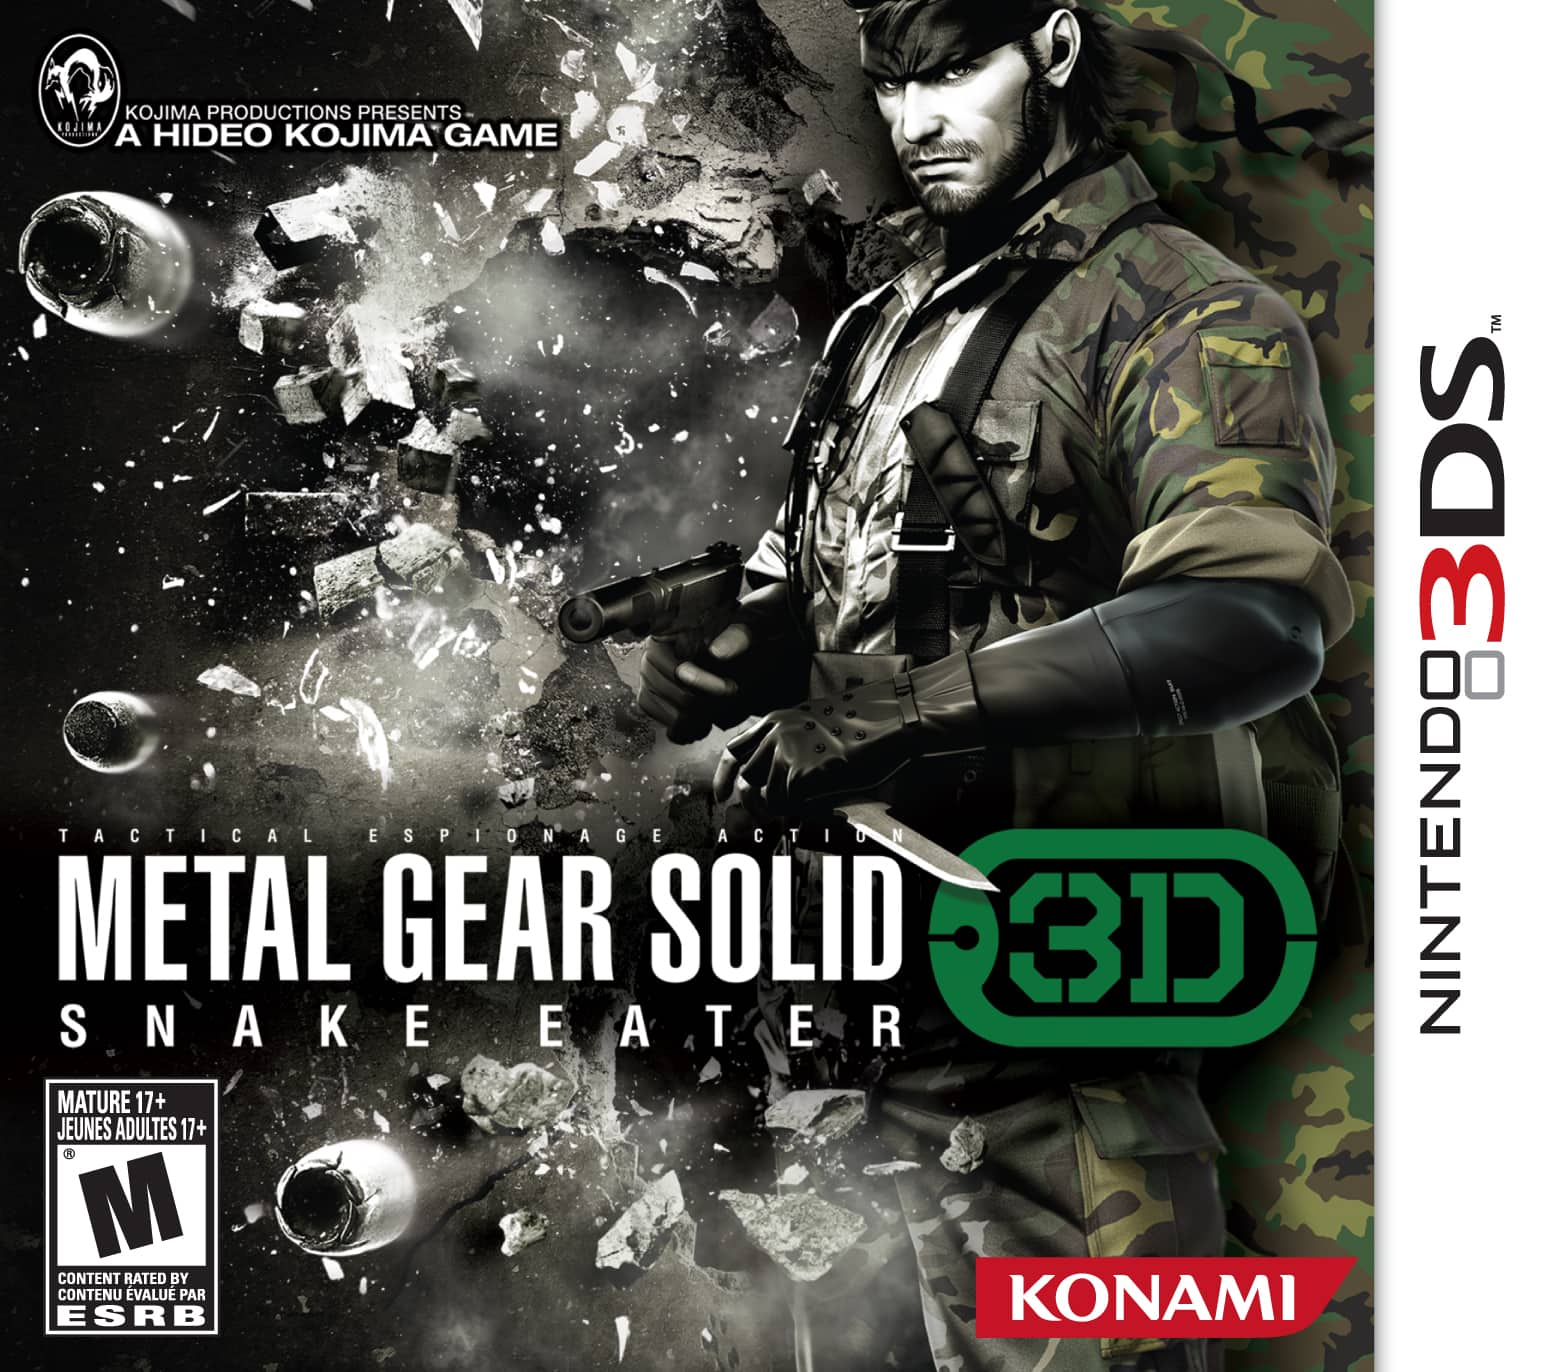 Metal Gear Solid: Snake Eater 3D for Nintendo 3DS $19.75 with Free Shipping